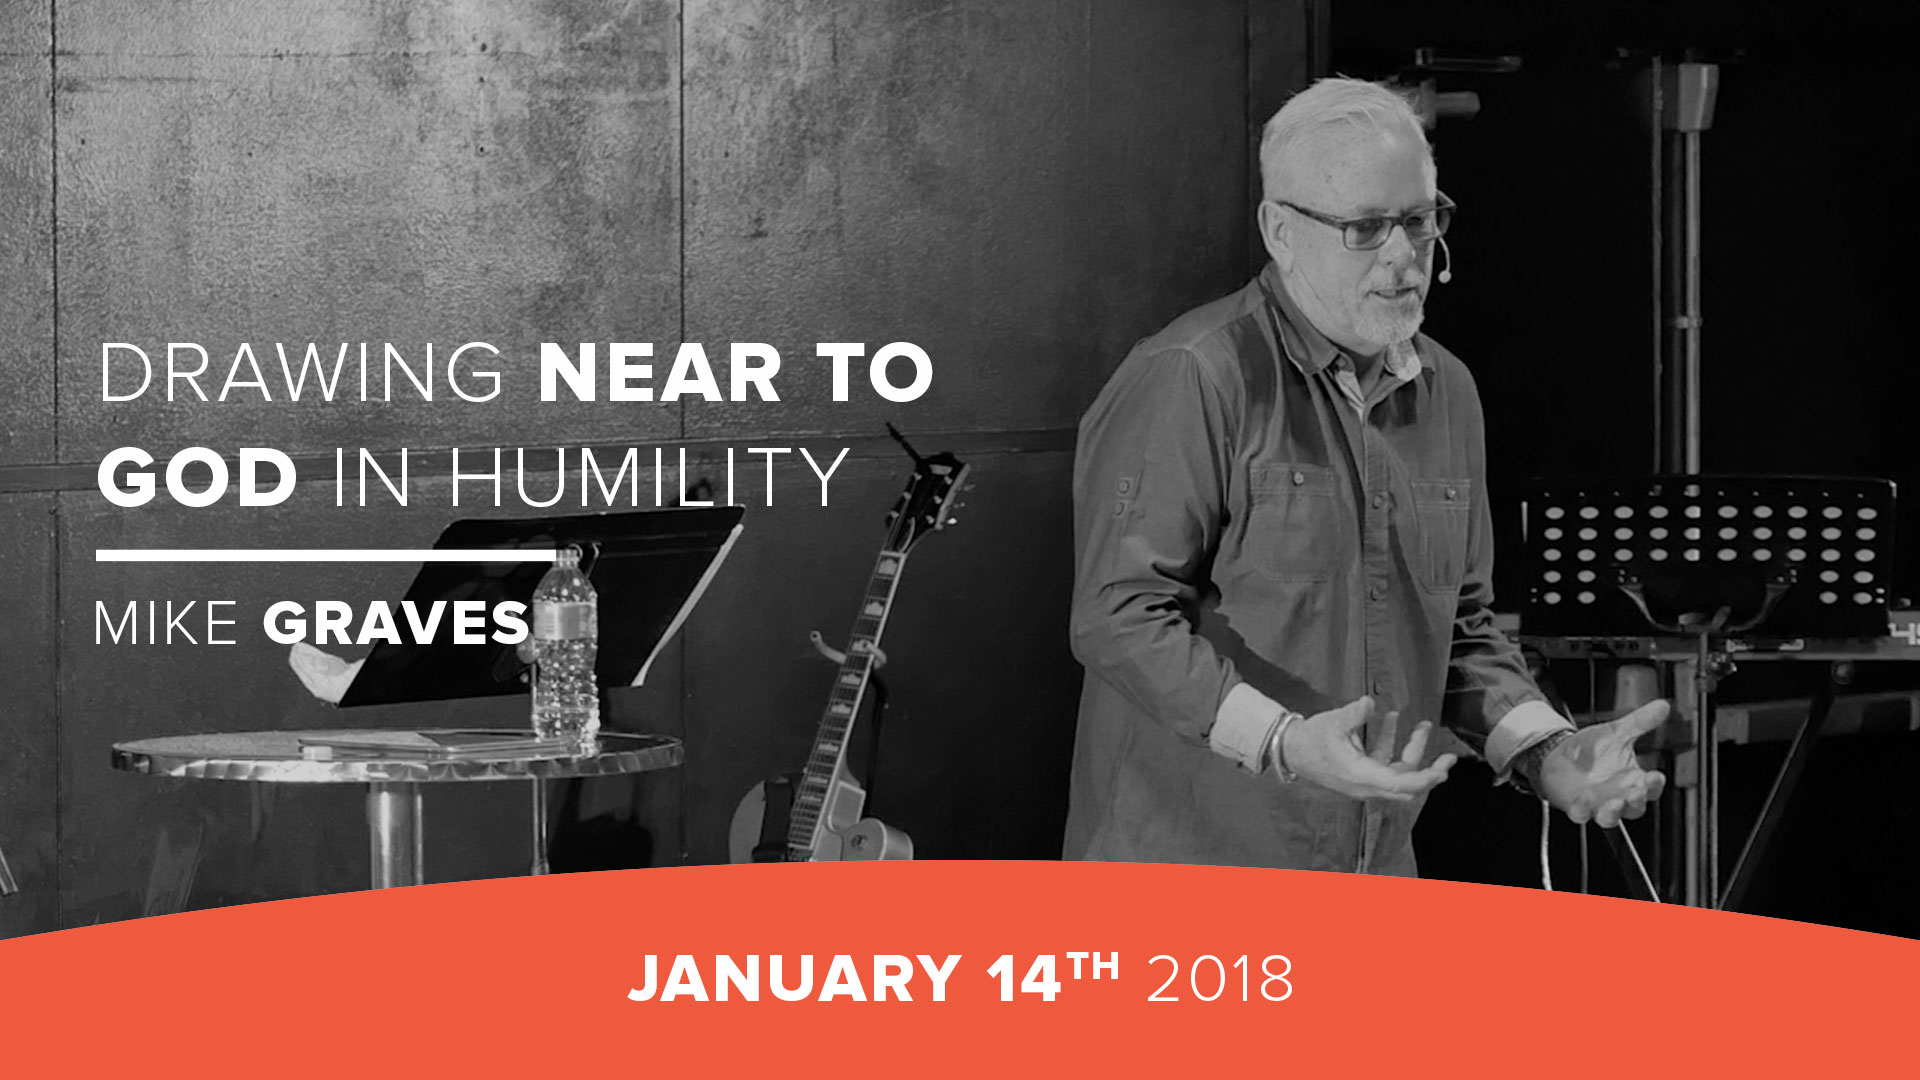 Drawing near to God in humility